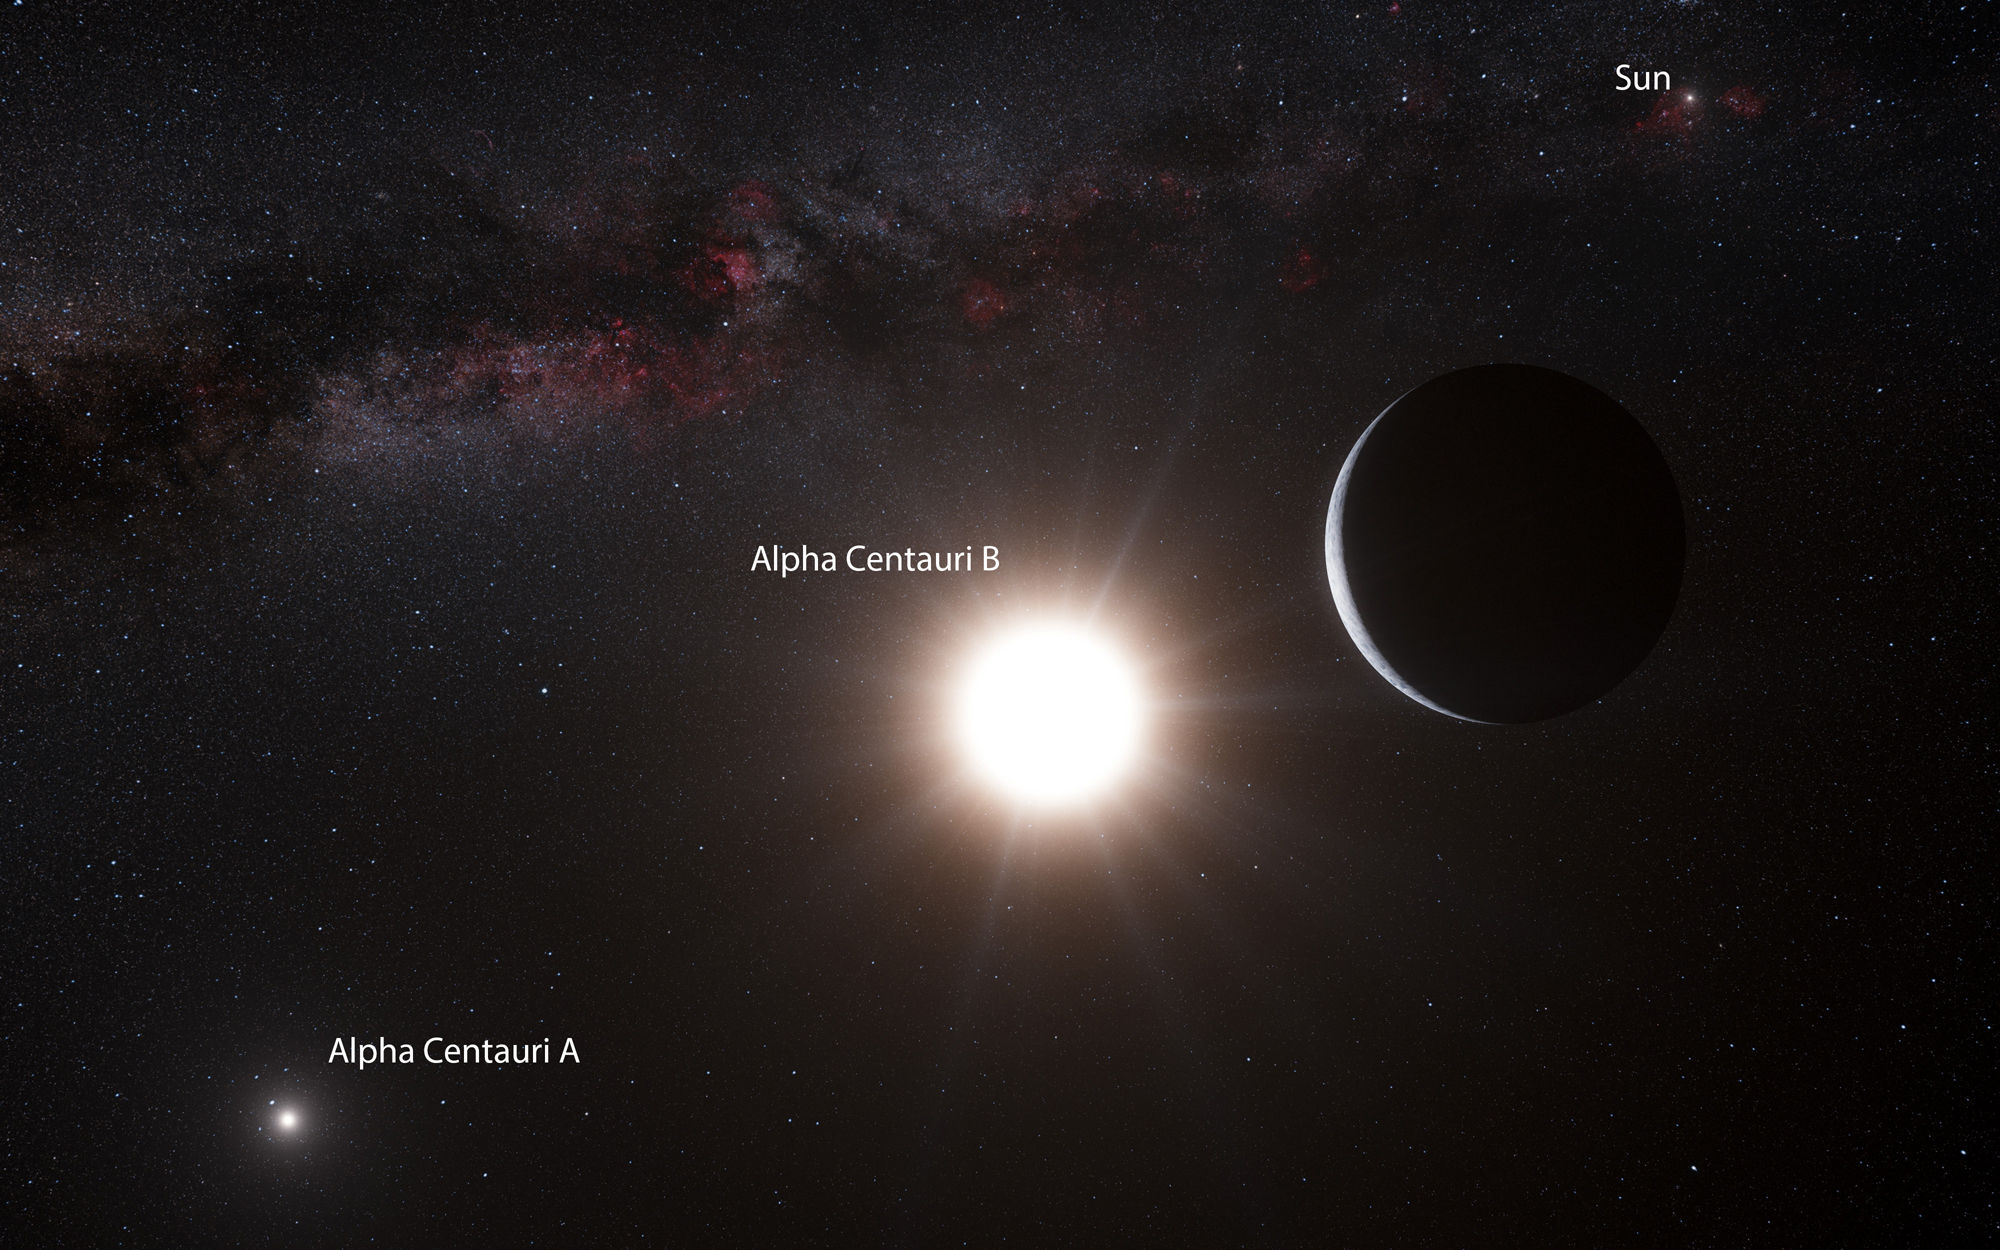 Earth-Sized Planet Found in the Star System Next Door (2012).